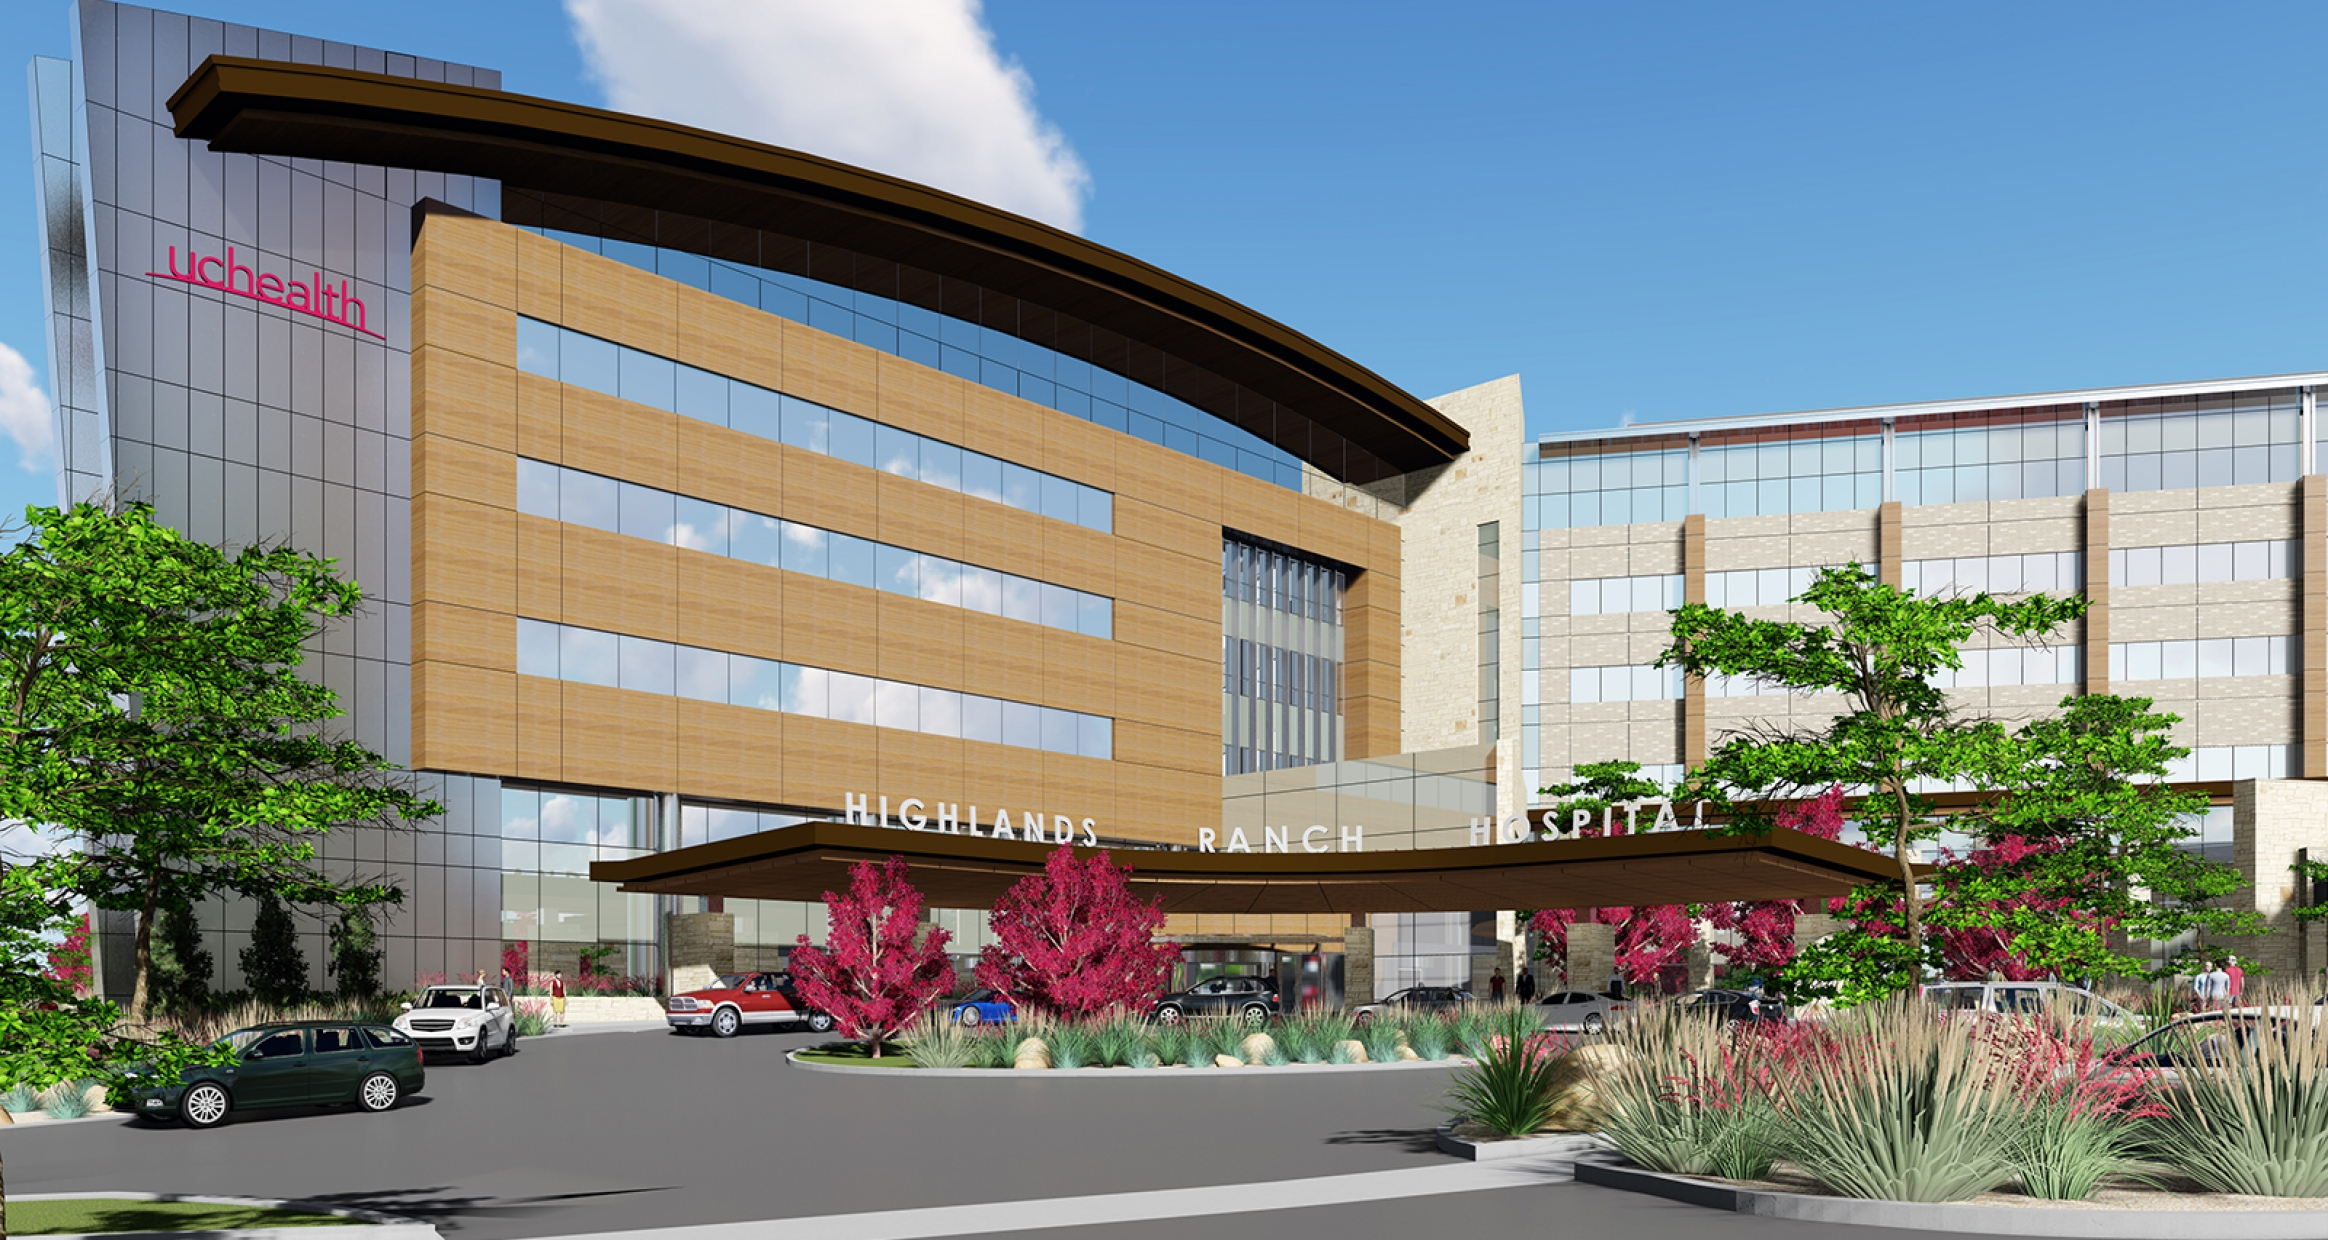 Highlands Ranch Hospital